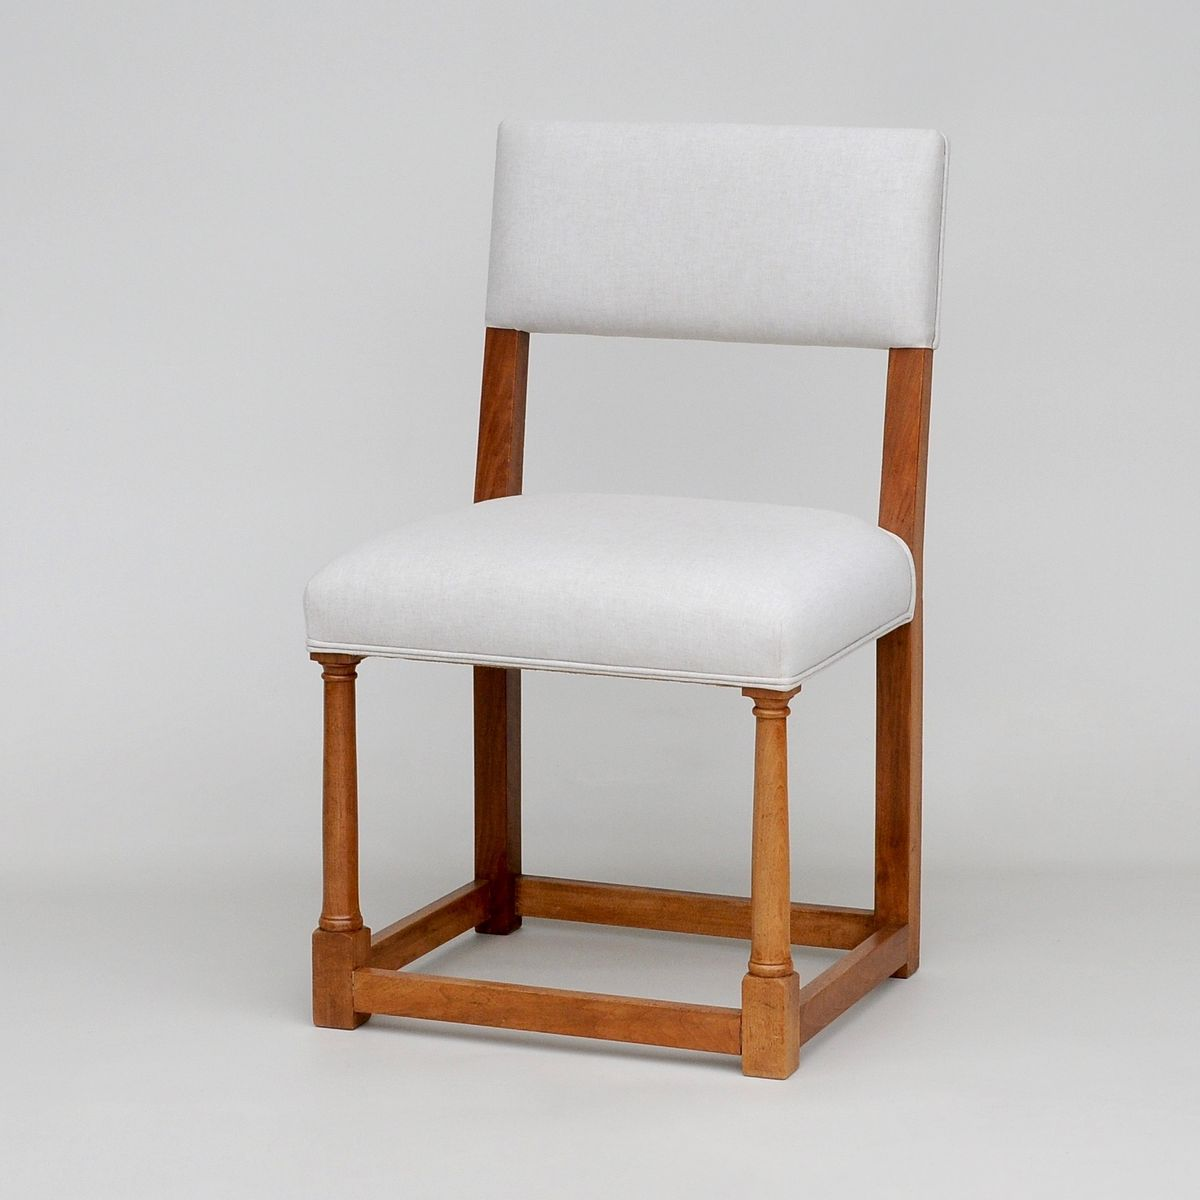 french walnut dining chairs s set of  for sale at pamono - french walnut dining chairs s set of